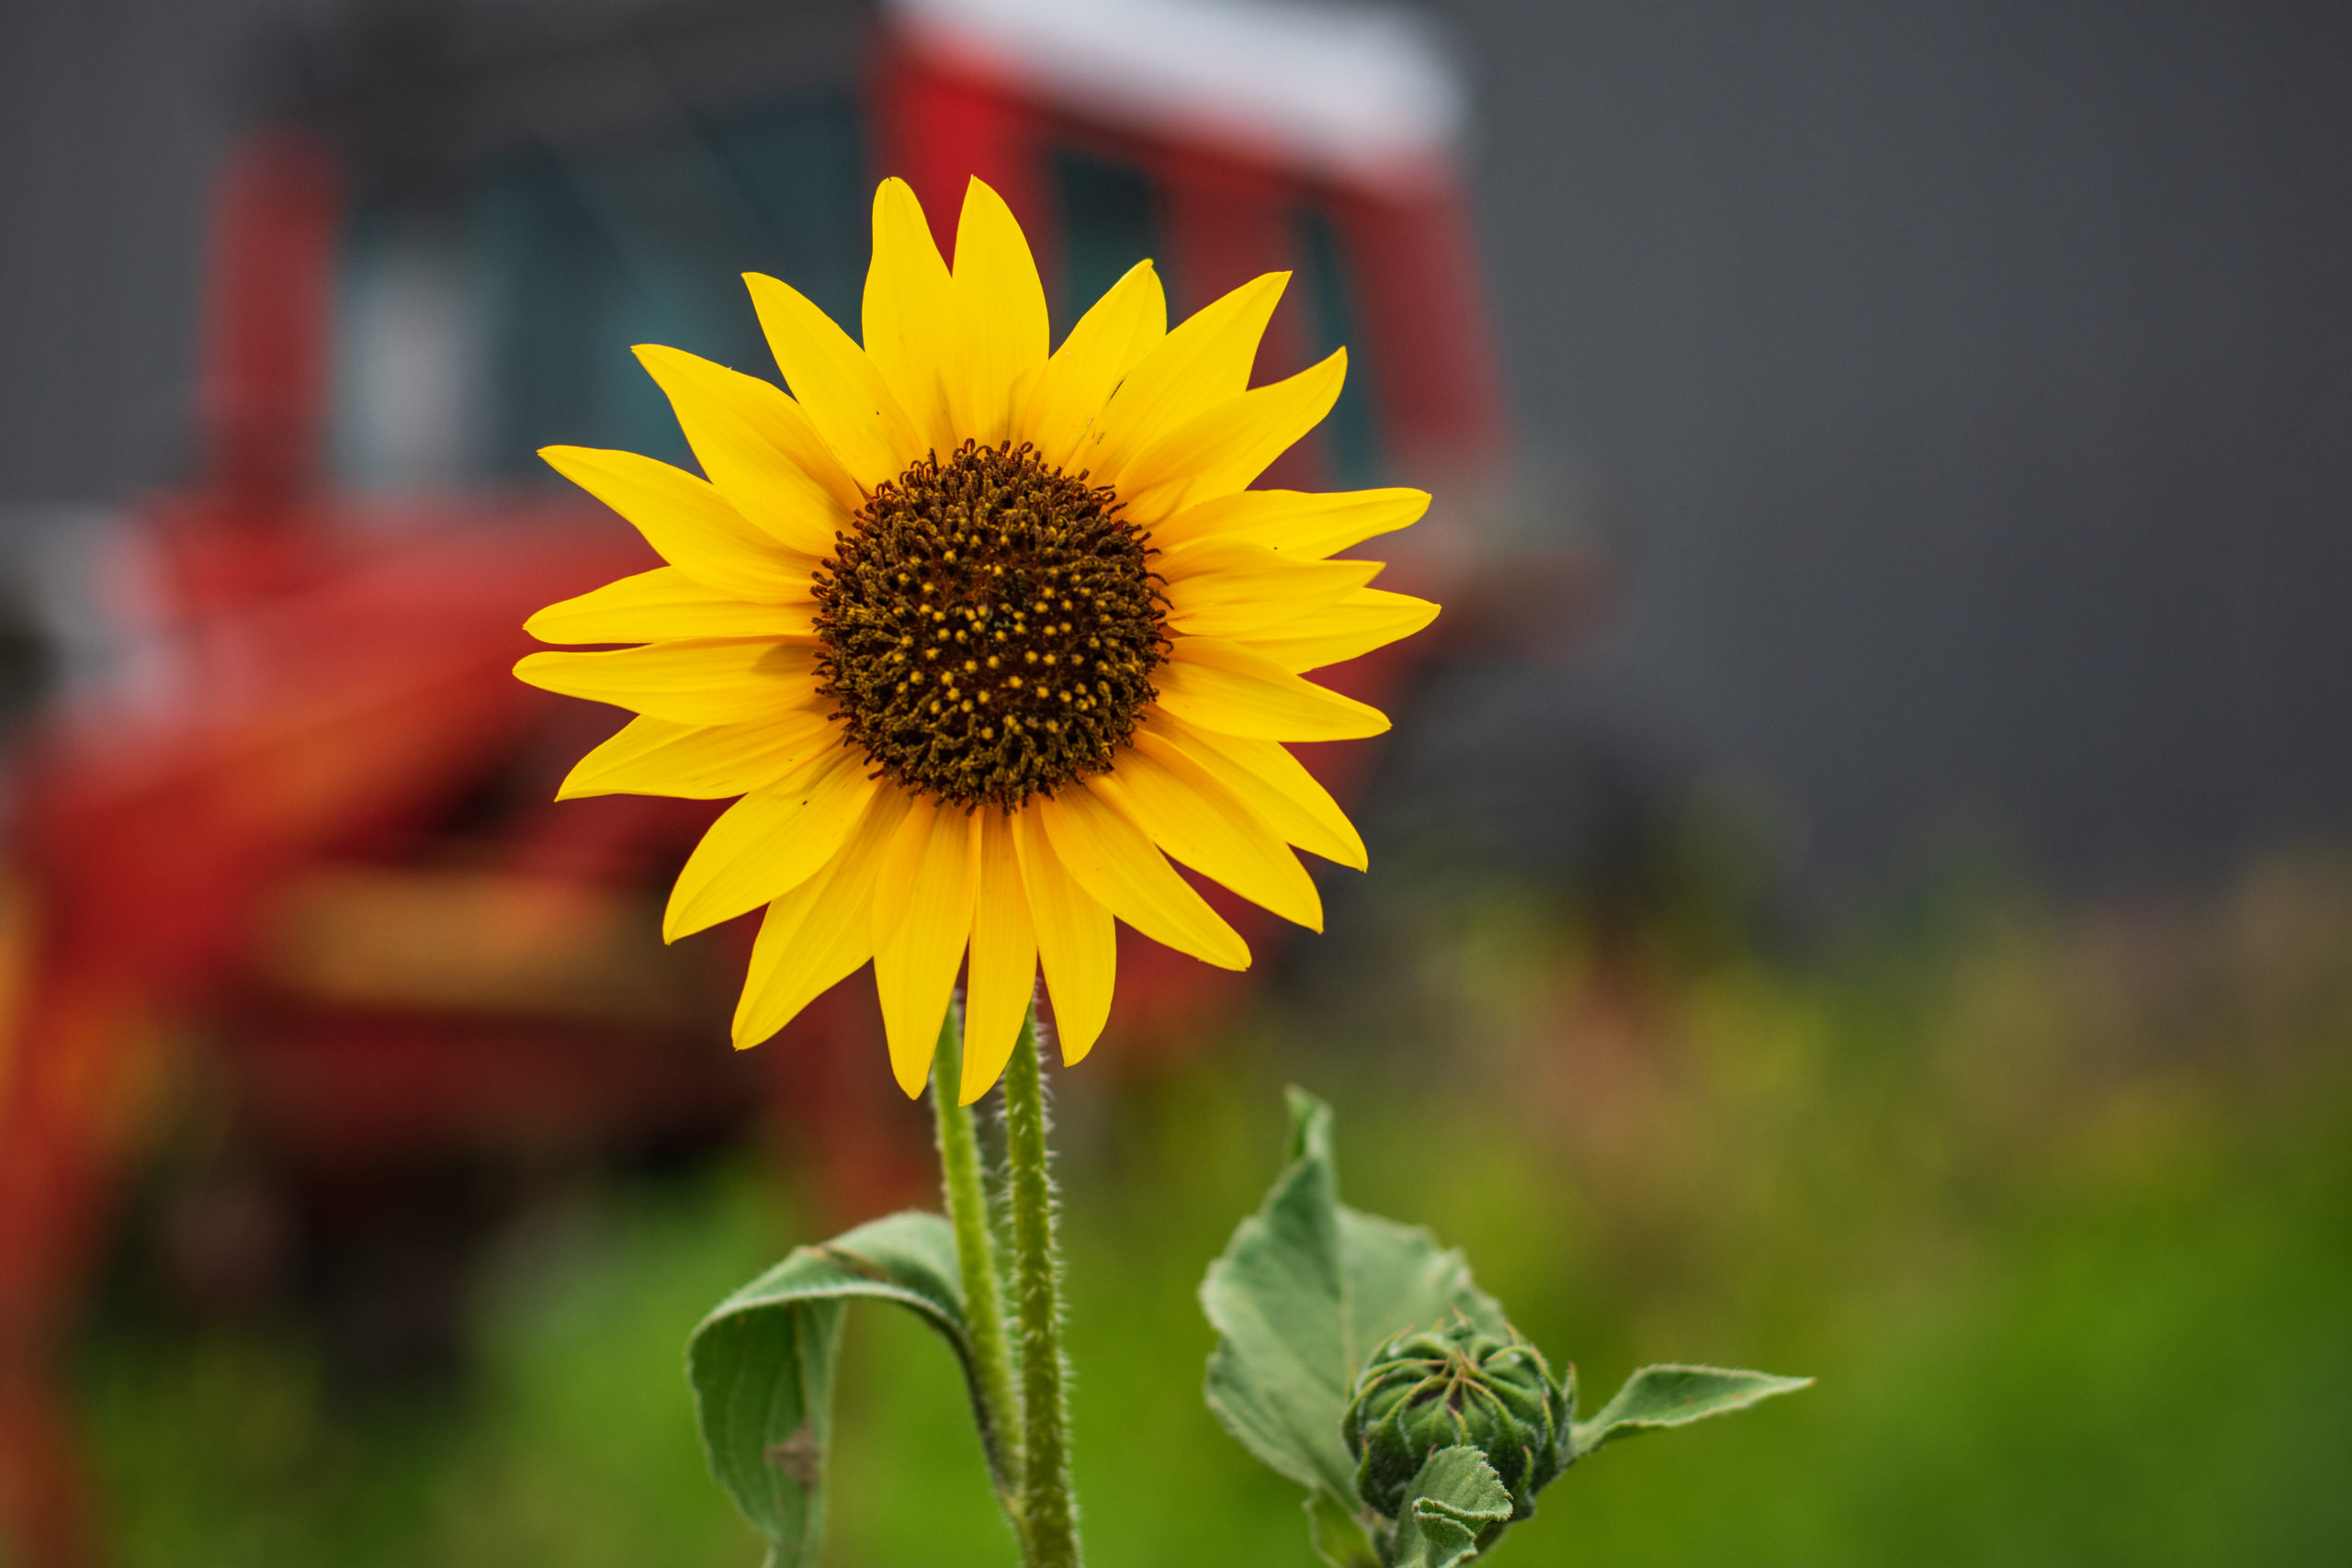 Close up photo of a sunflower with a tractor in the background.